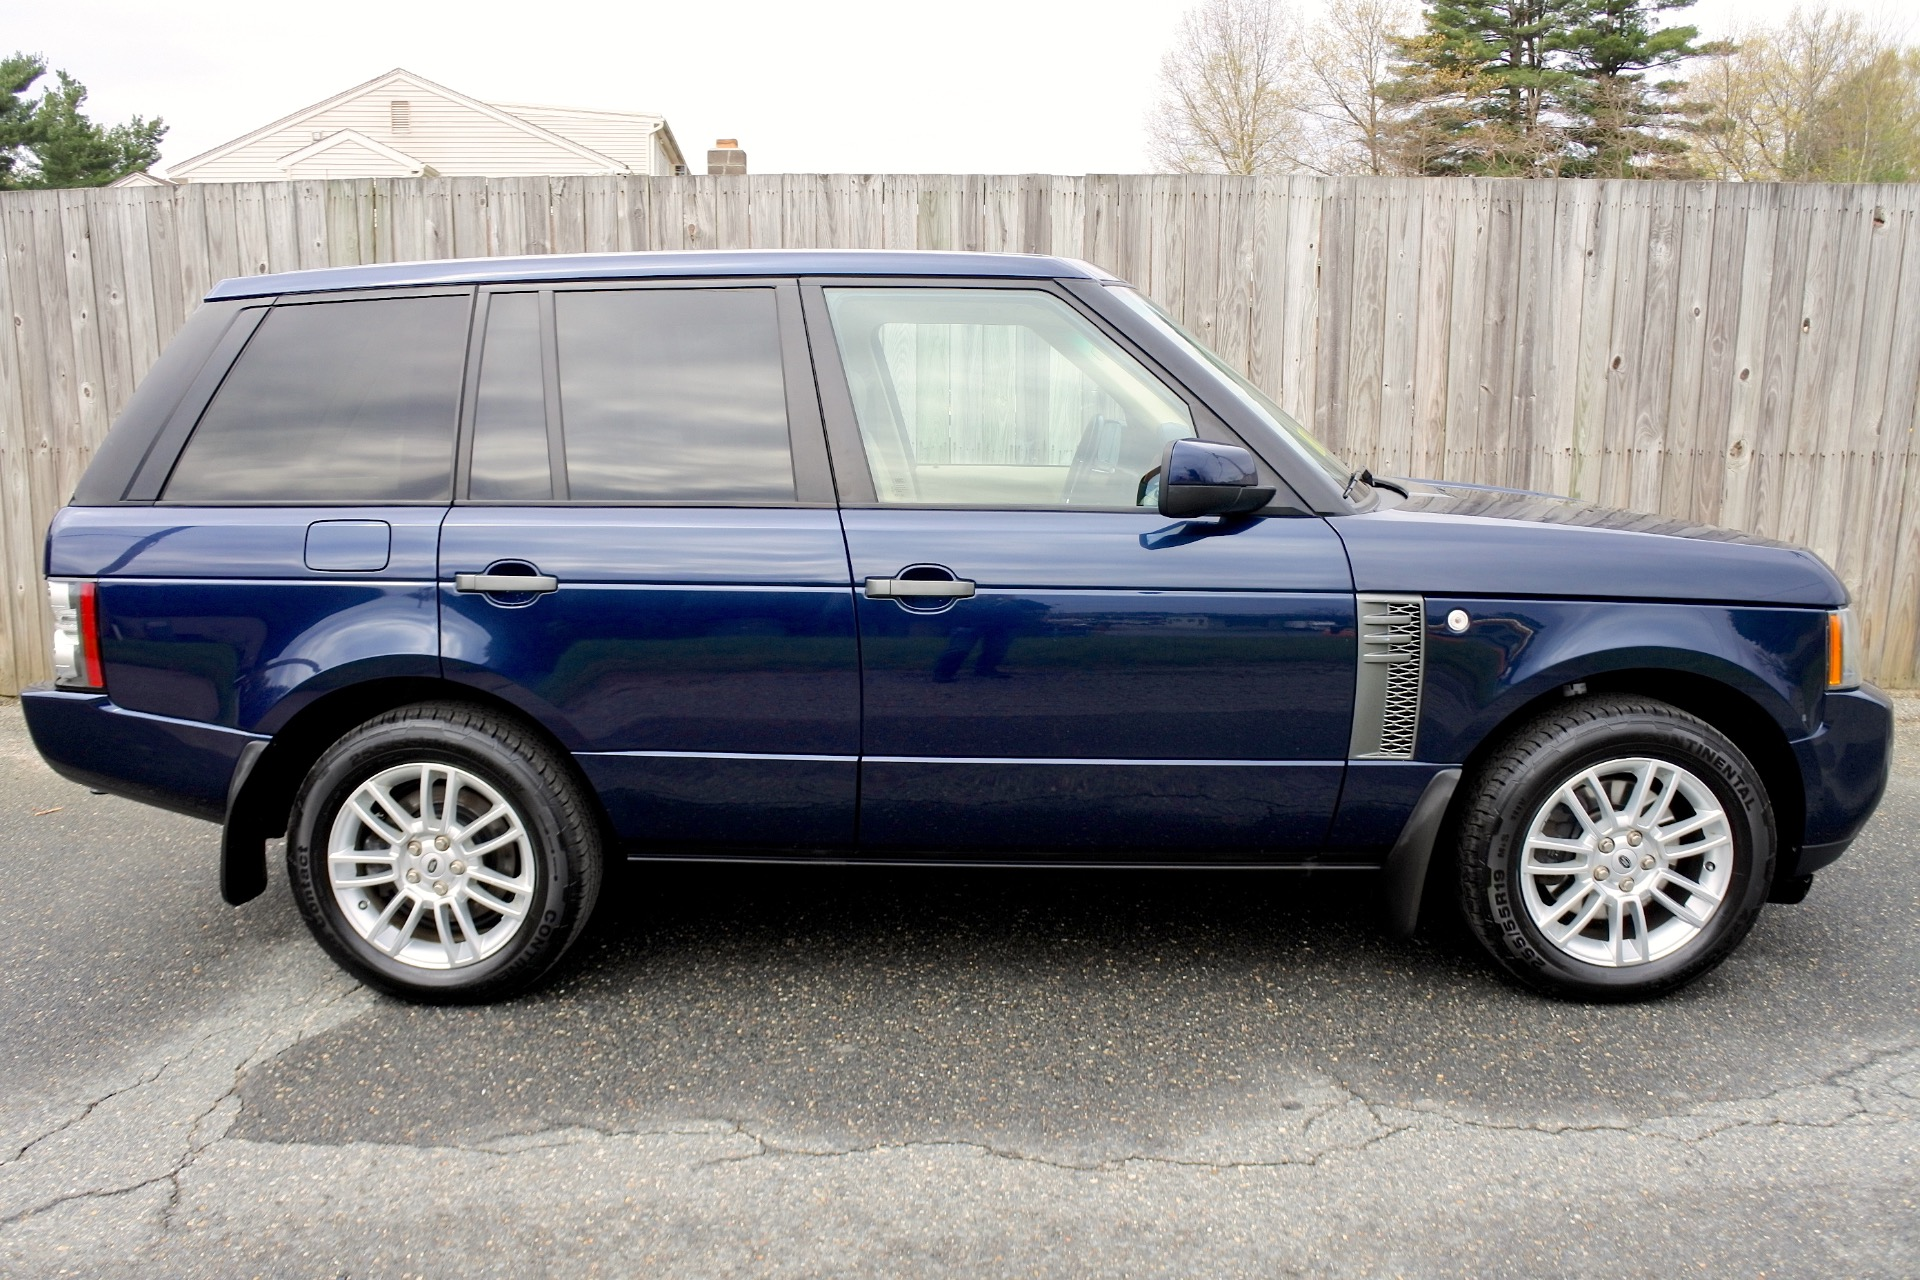 Used 2011 Land Rover Range Rover HSE Used 2011 Land Rover Range Rover HSE for sale  at Metro West Motorcars LLC in Shrewsbury MA 6